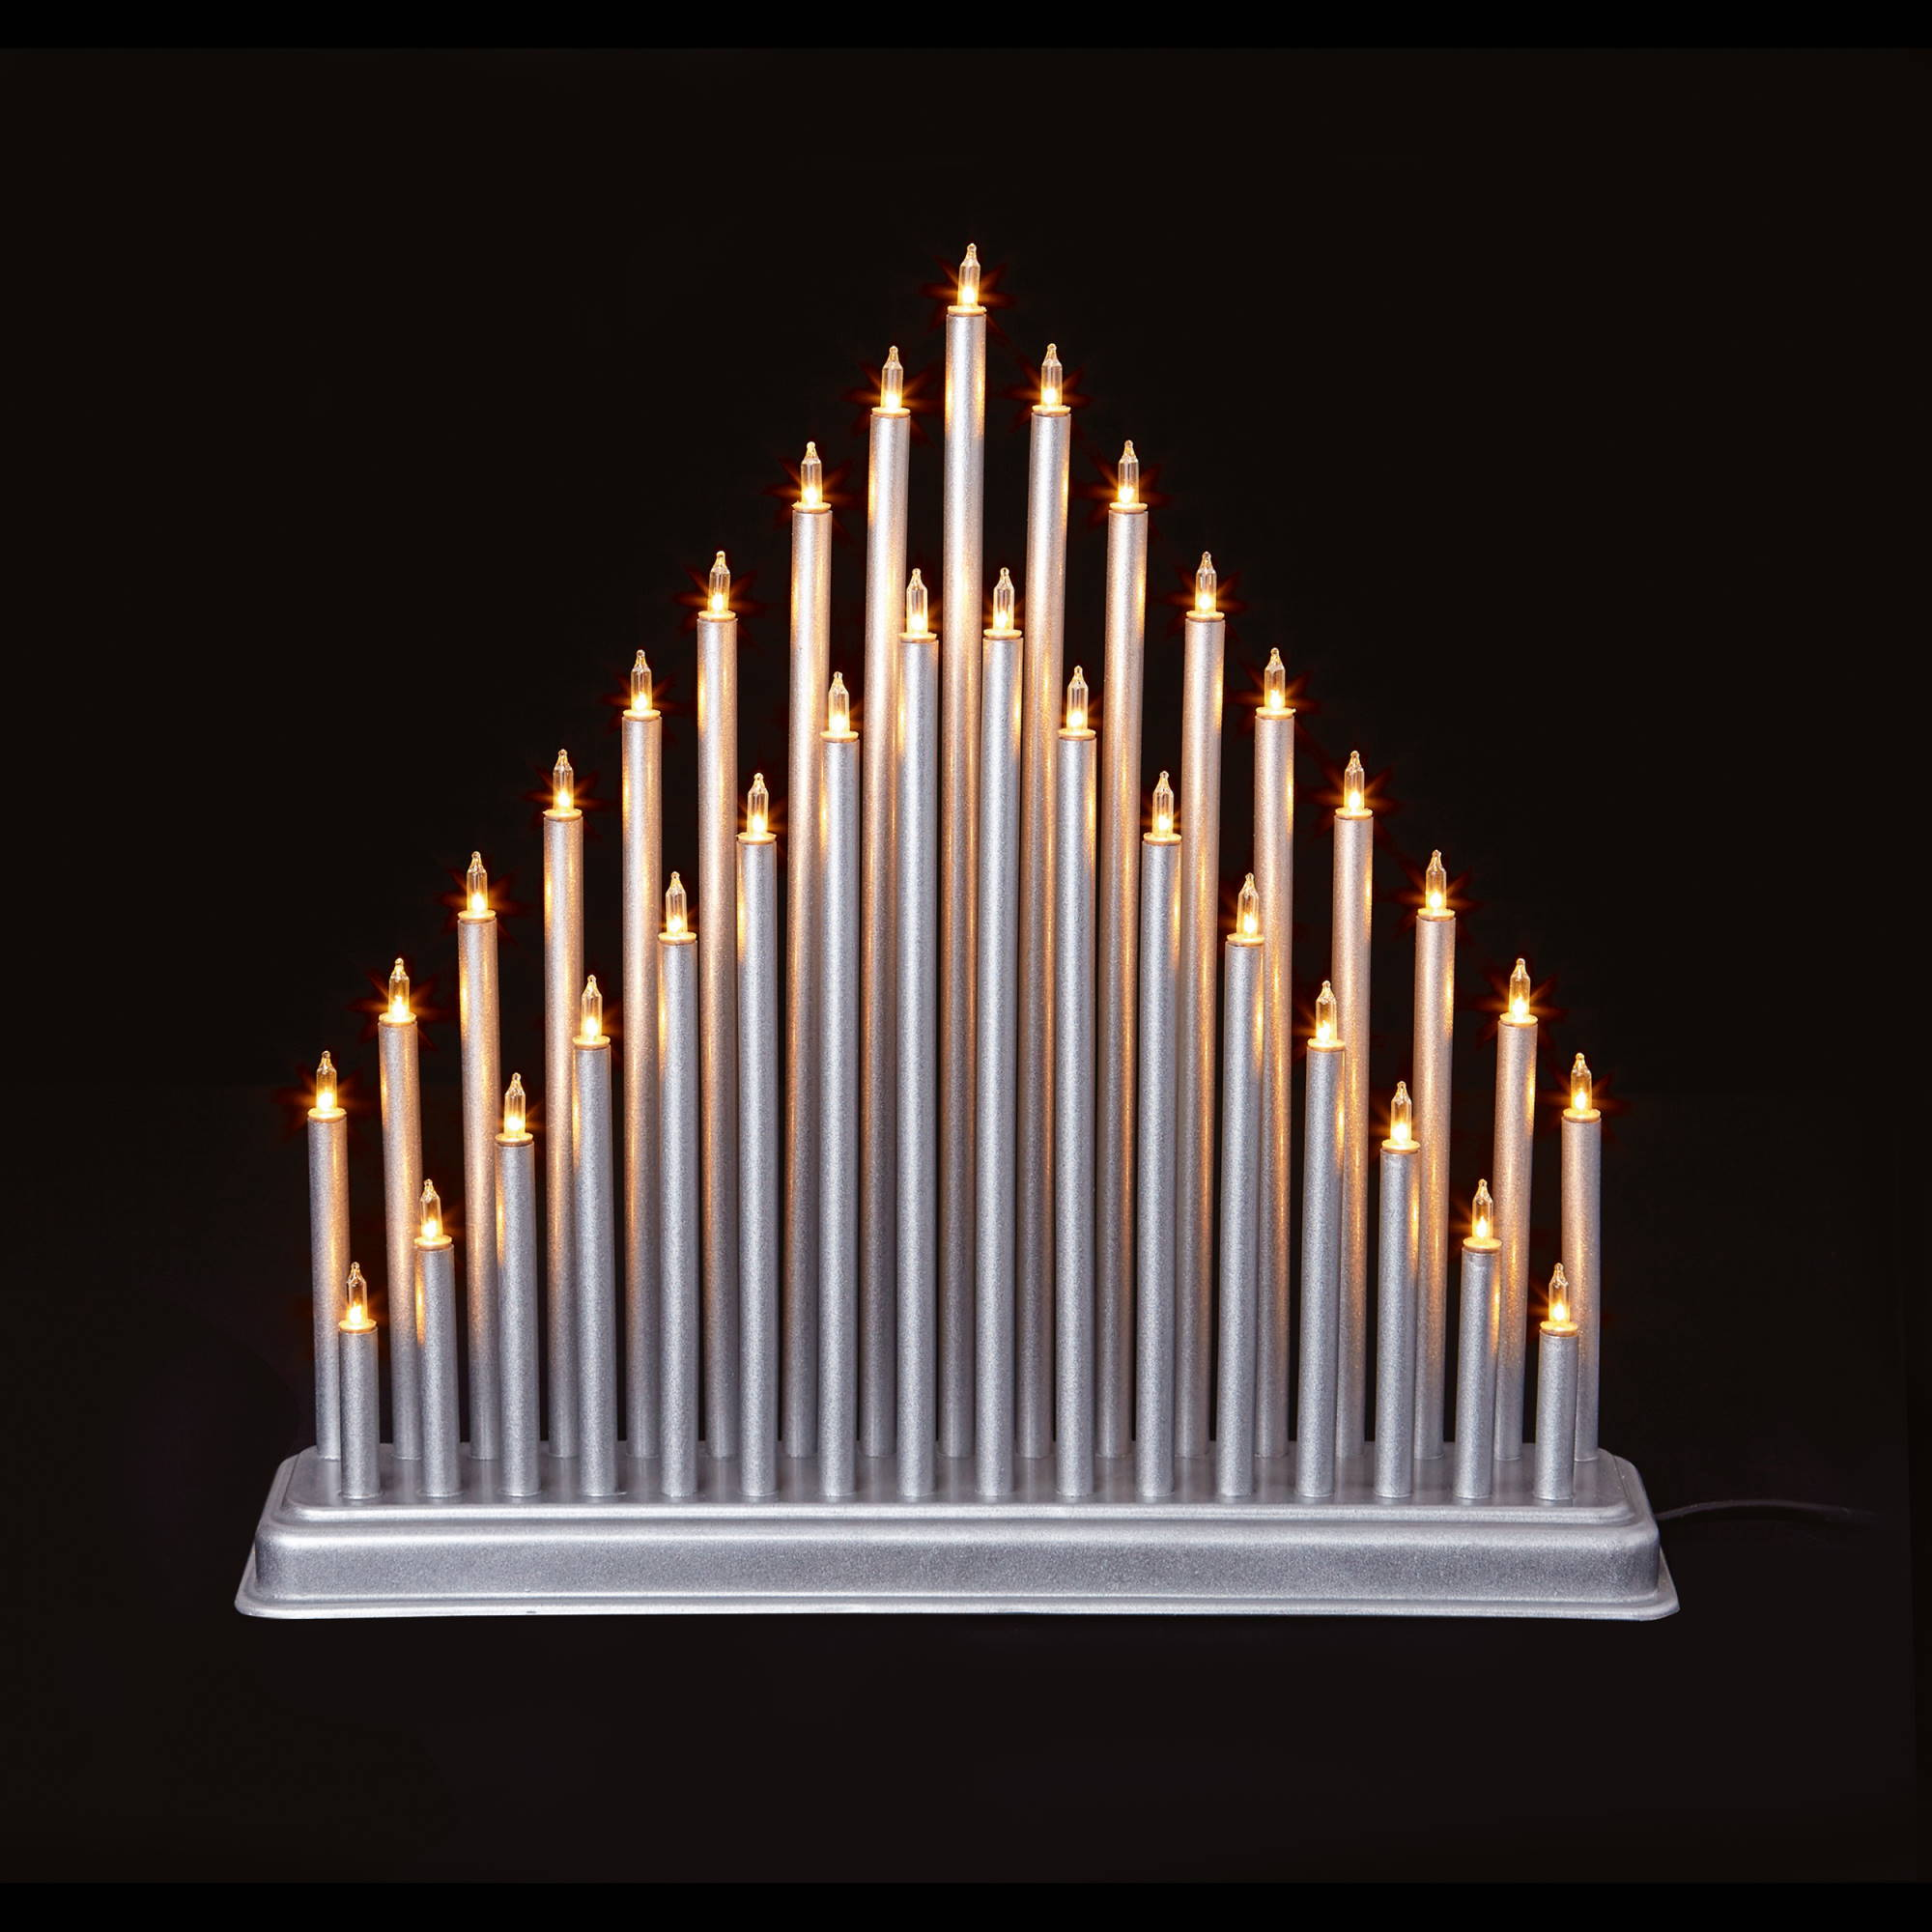 33 Light Christmas Candle Bridge Tower - Silver